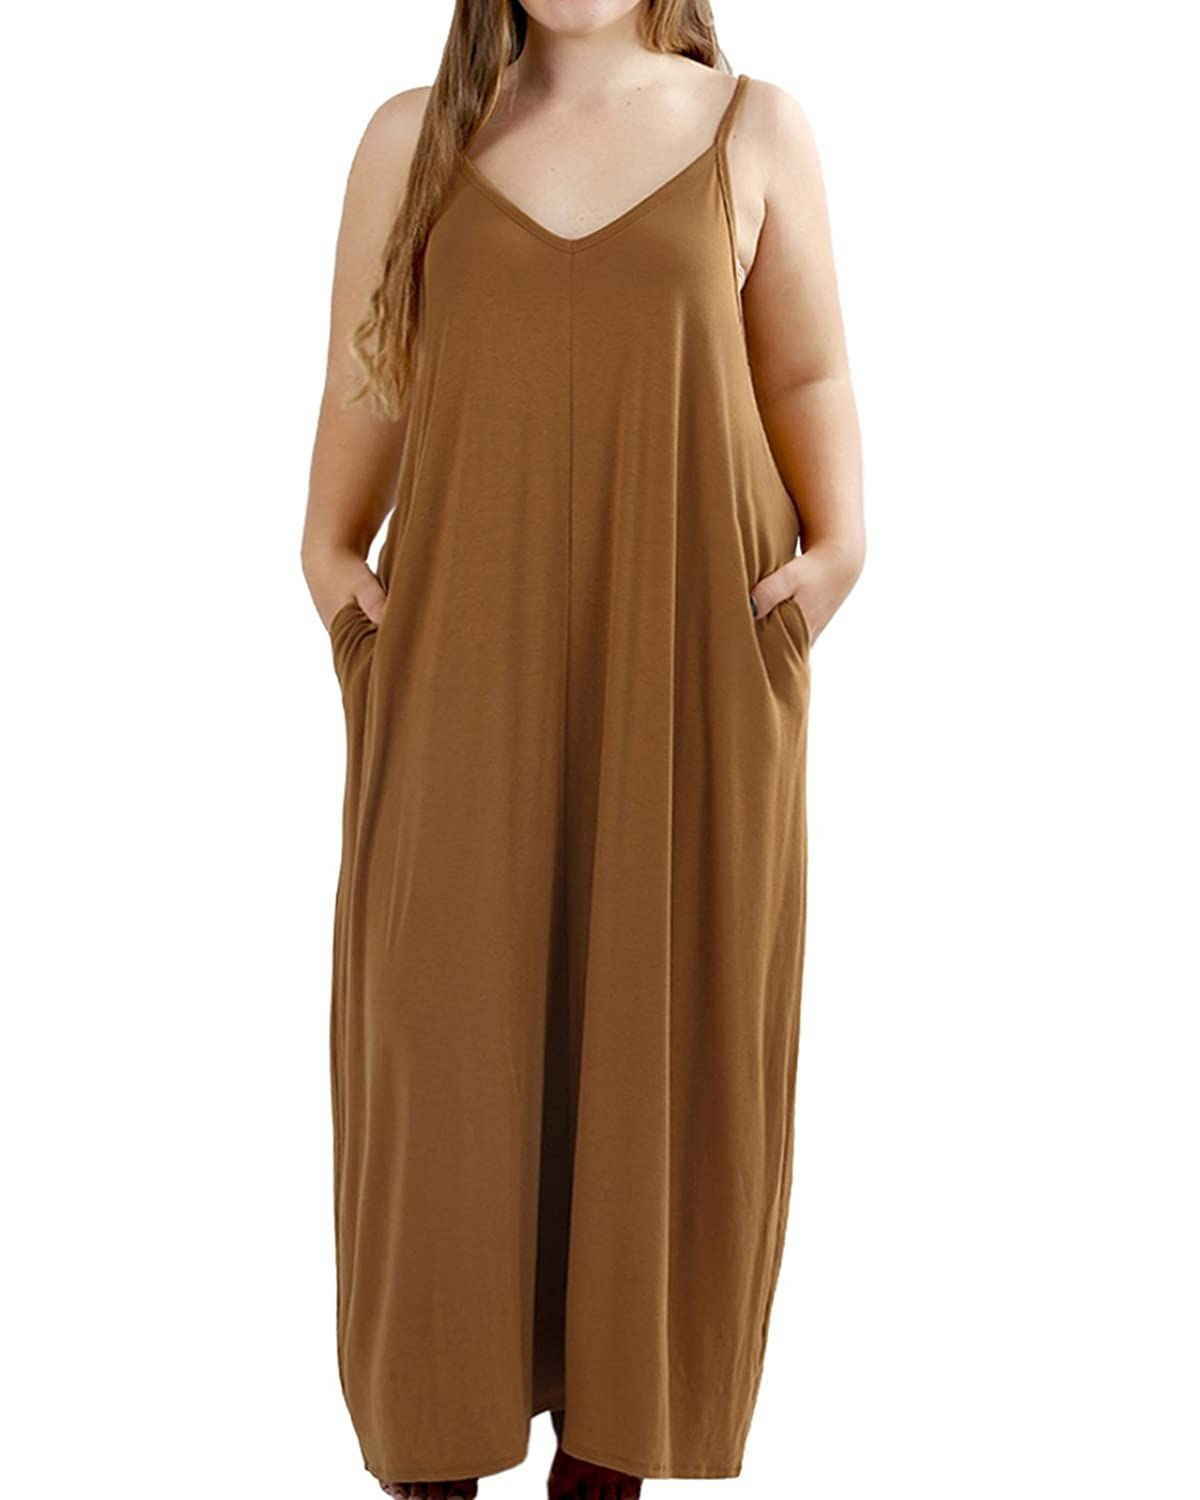 612586392e5 Good soft and comfortable lightweight stretchy plus size dresses. Summer  dresses for women